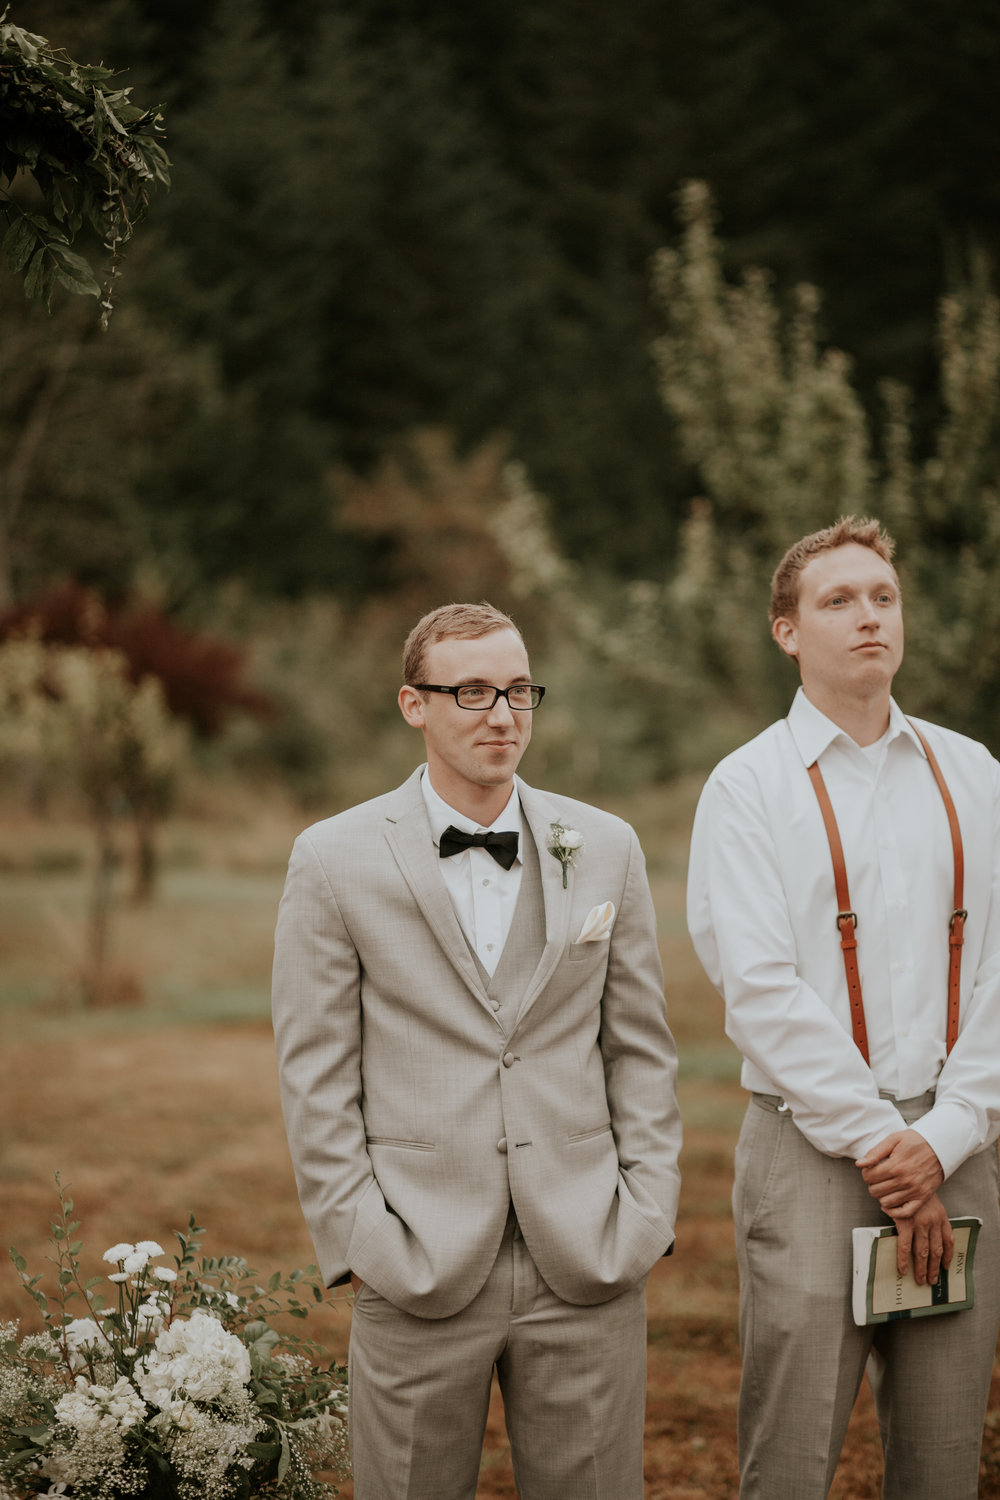 Port-Angeles-elopement-wedding-pnw-olympic-peninsula-photographer-portrait-kayladawnphoto-kayla-dawn-photography-olympic-national-park-49.jpg